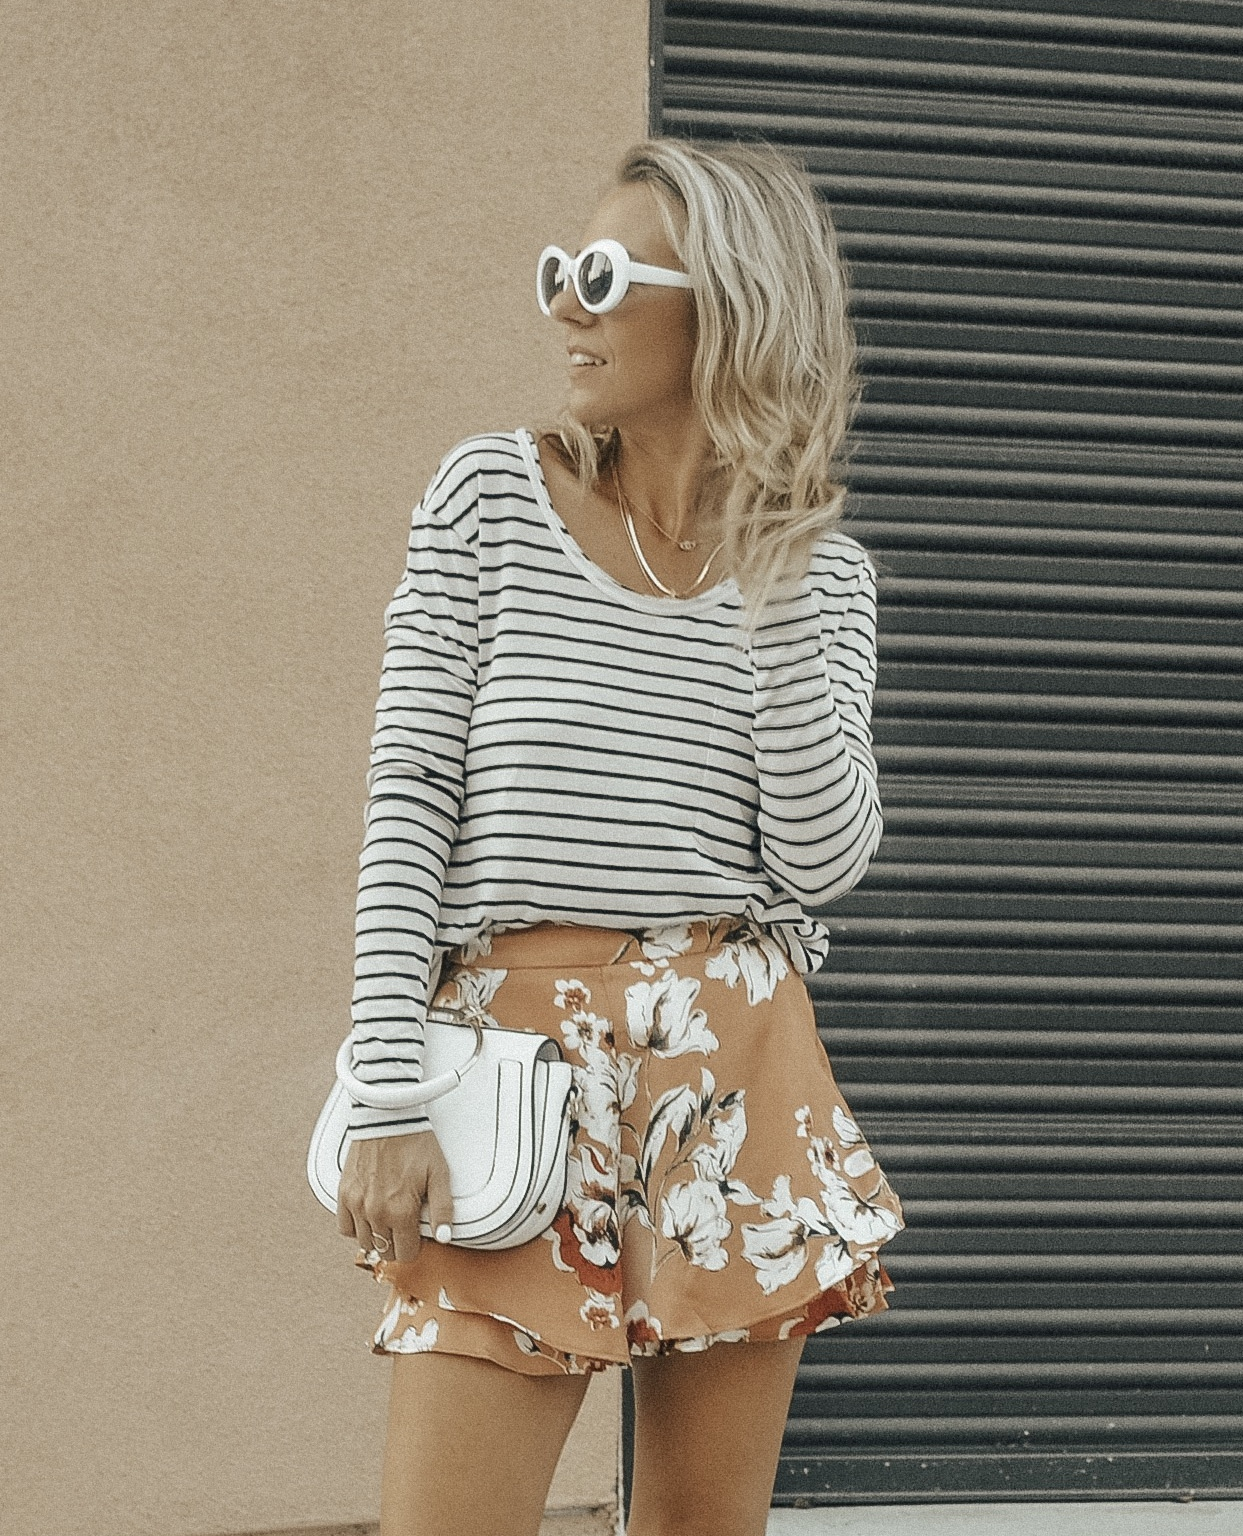 MATCHING SETS WITH BISHOP + YOUNG - Jaclyn De Leon Style + floral ruffle shorts + striped pocket tee + bohemian + gray block heel booties + fall outfit + summer style + casual street style + boho chic + Nordstrom + Zappos + Versatility of matching sets + mix and match